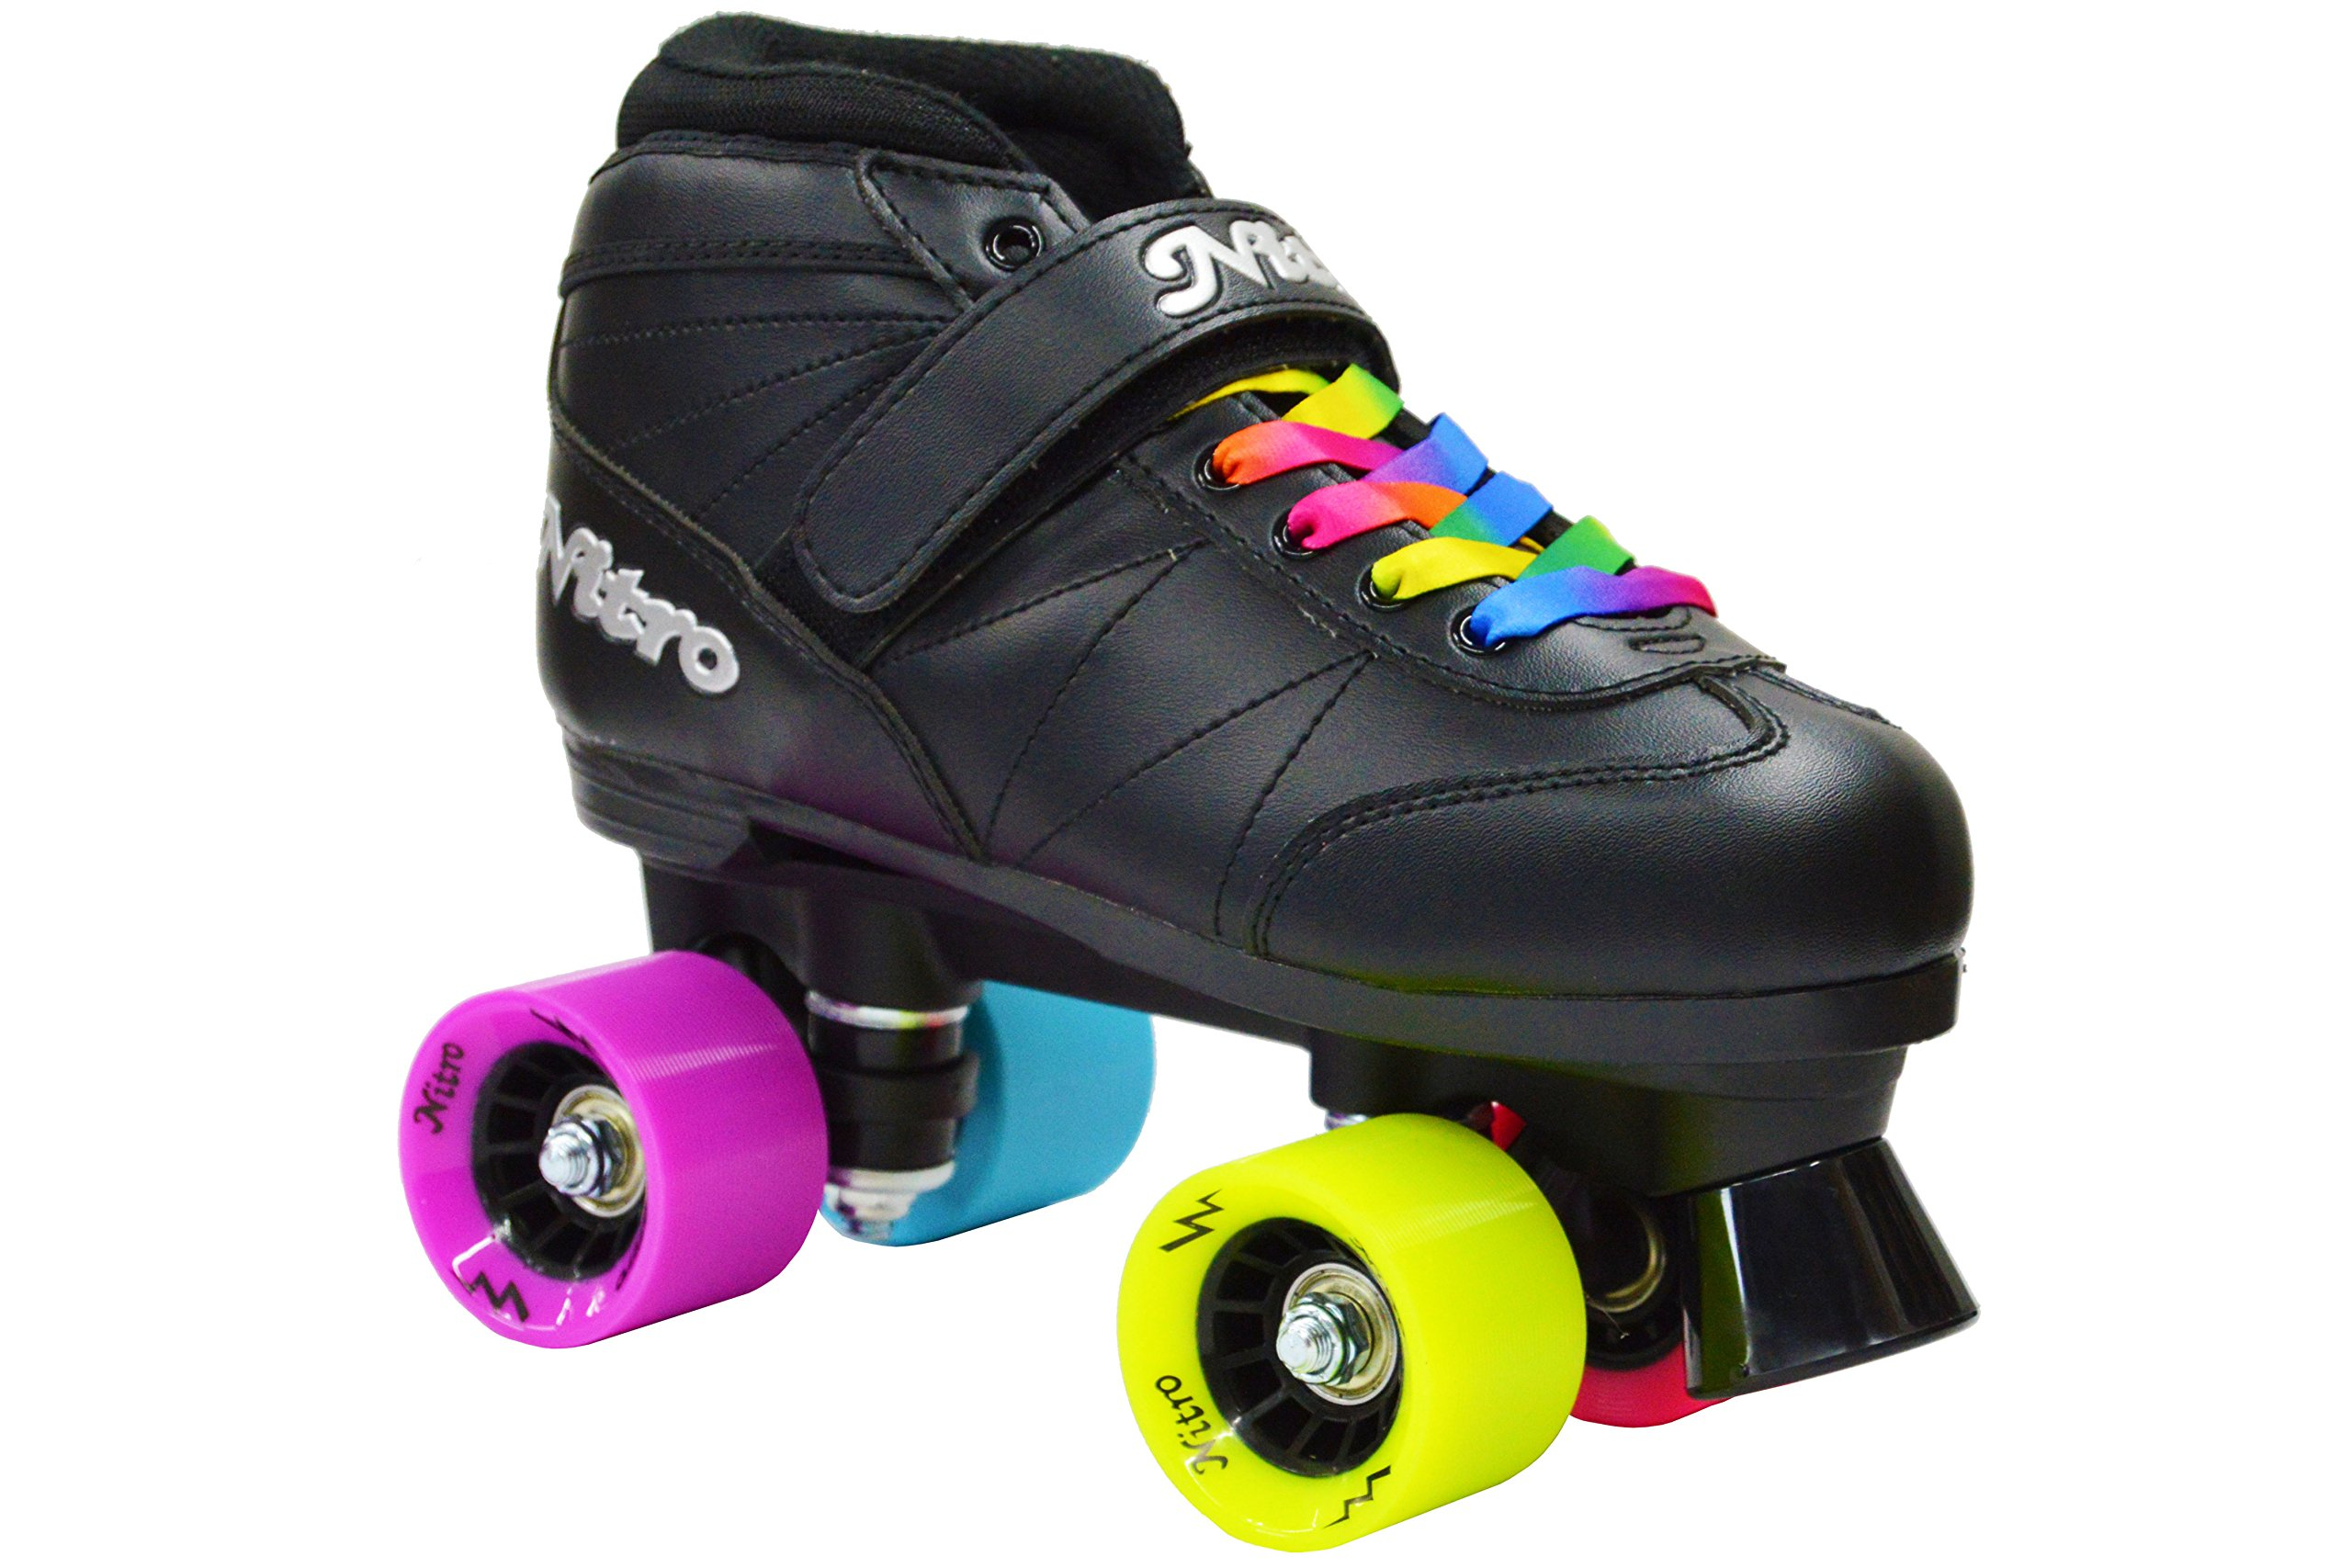 Epic Skates Men's Super Nitro Rainbow, Size 6